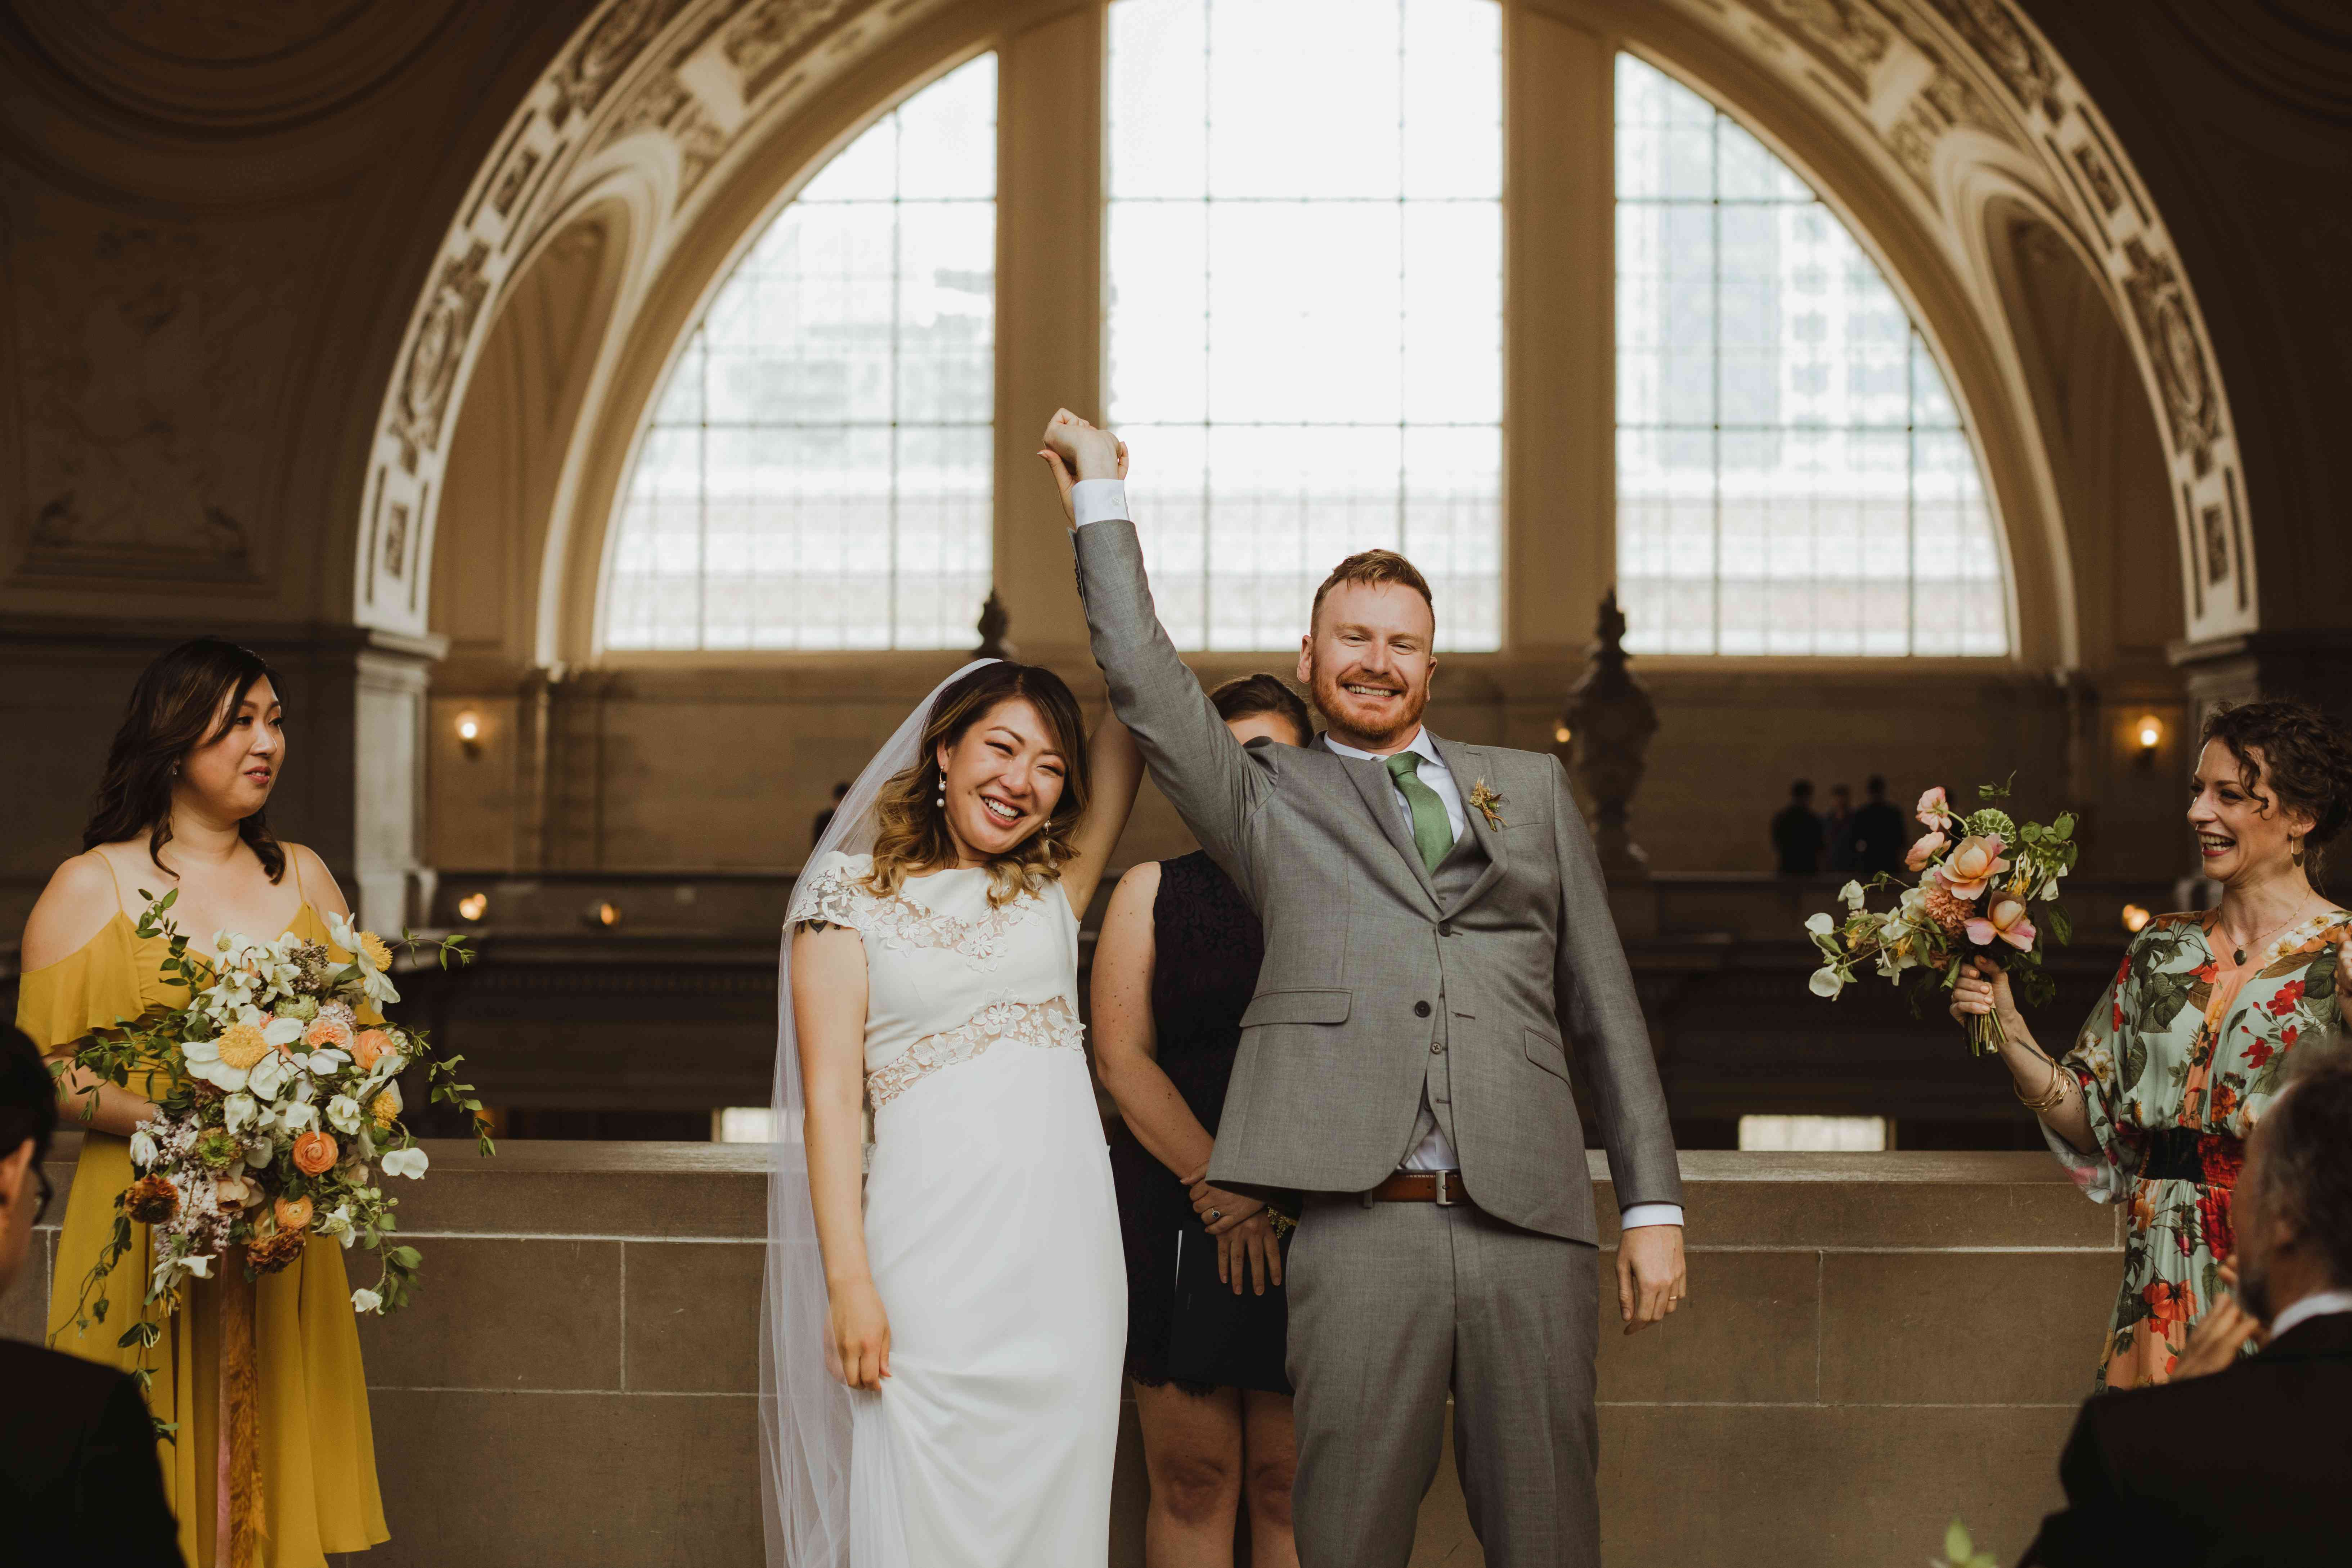 <p>Bride and groom after ceremony</p><br><br>